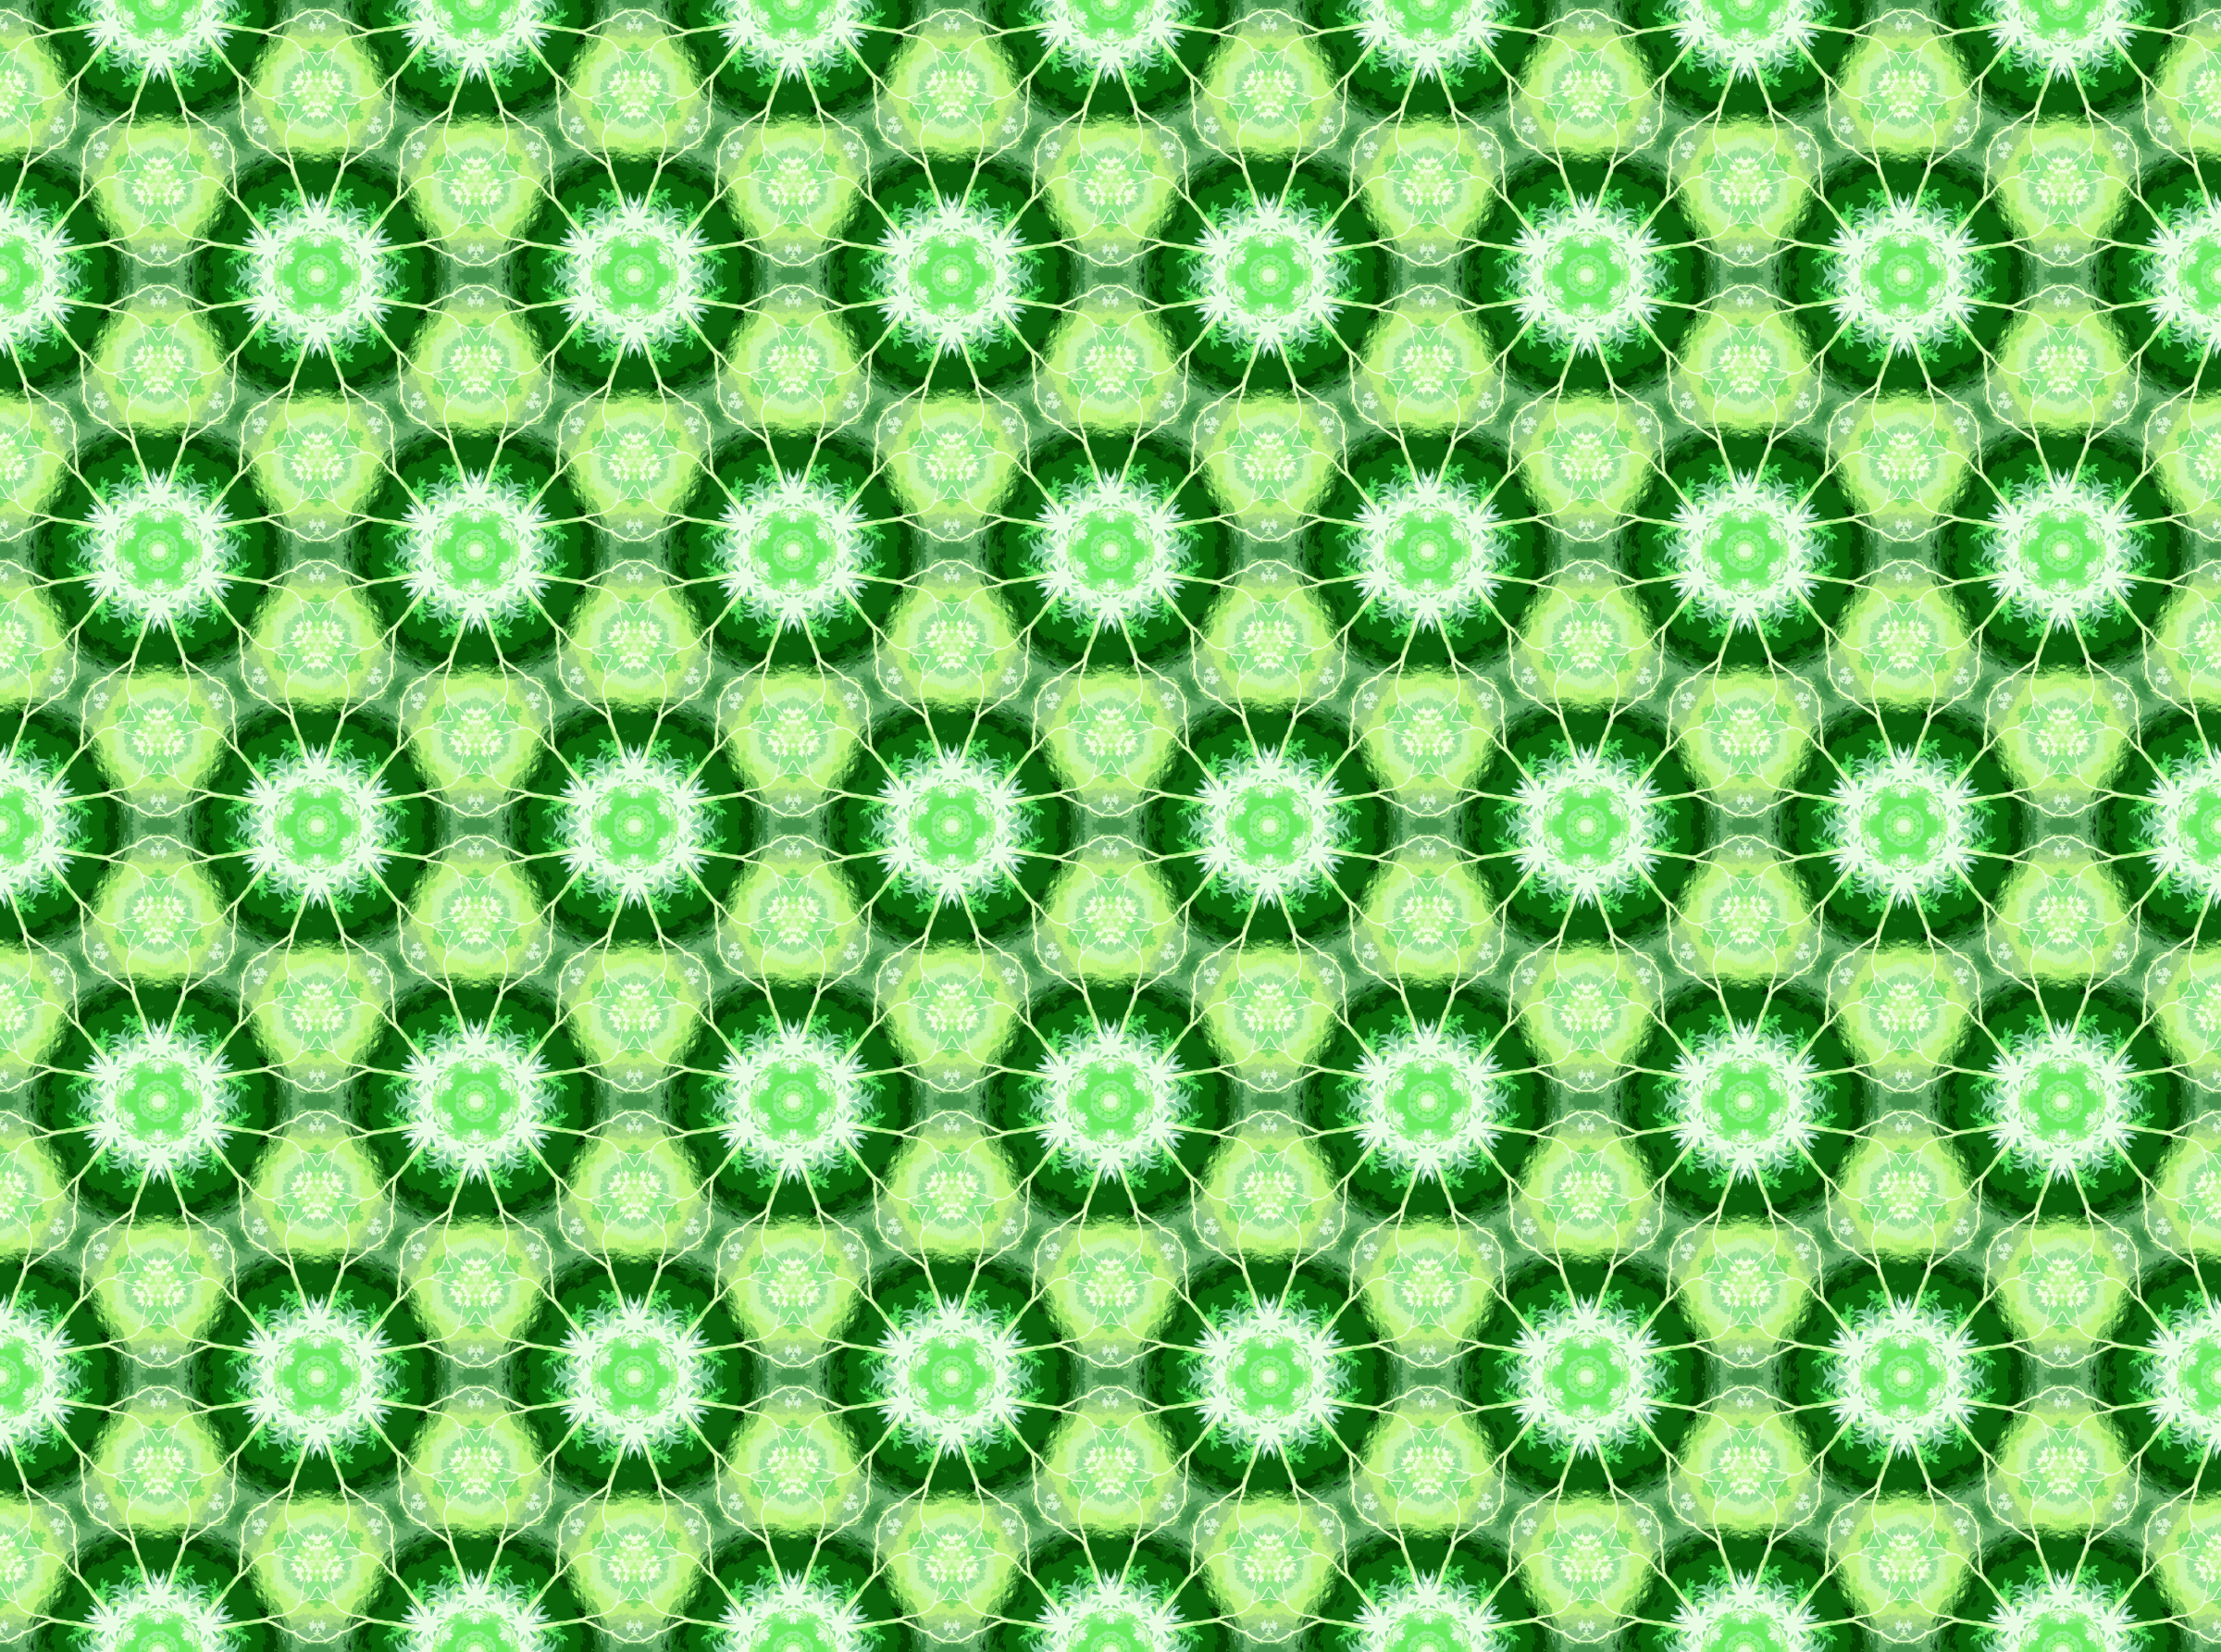 Background pattern 132 (colour 3) by Firkin